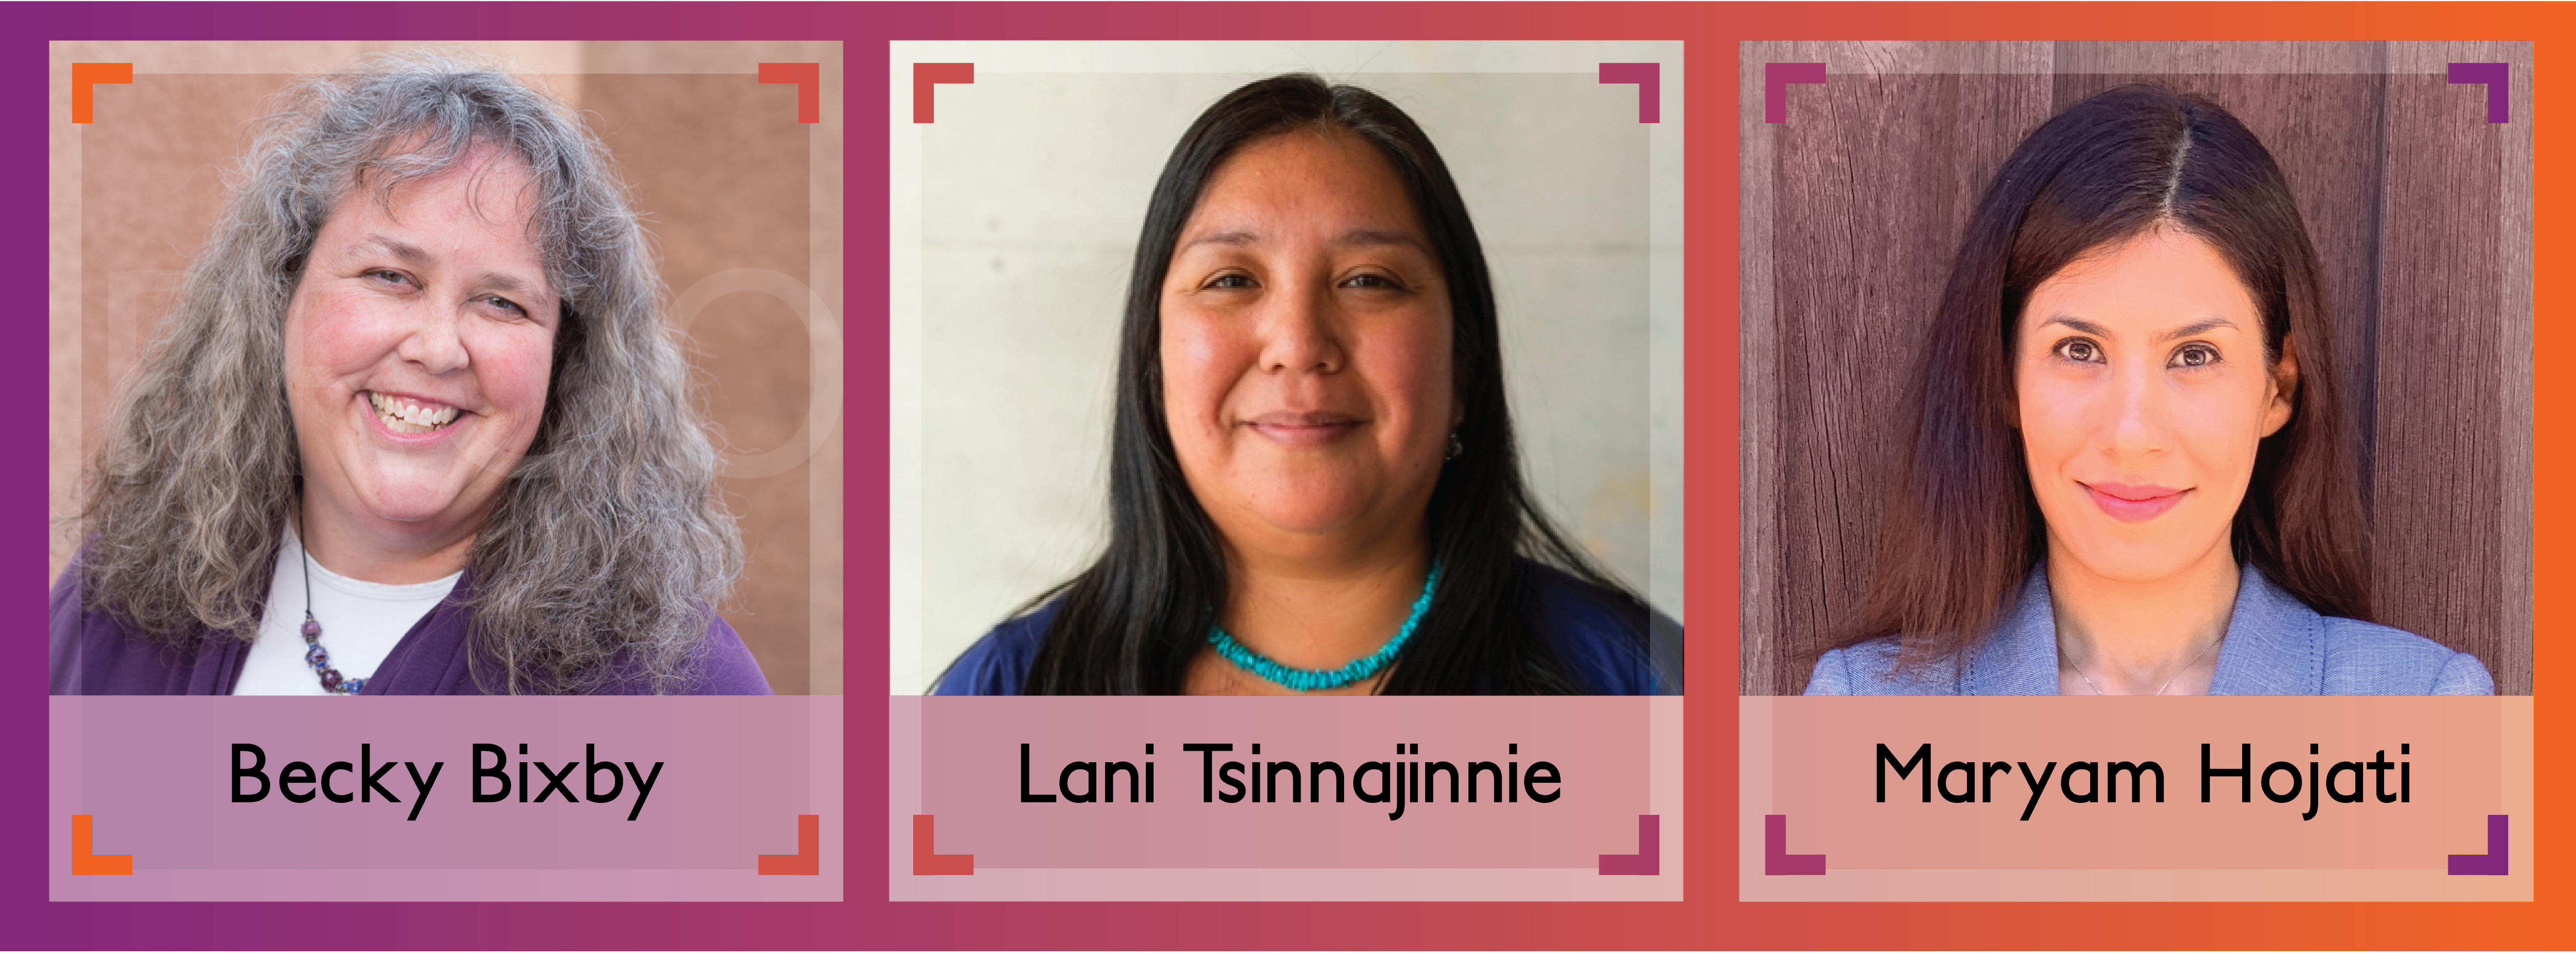 Banner with headshots of the three female NM EPSCoR alumni selected for 2020 Women in STEM awards